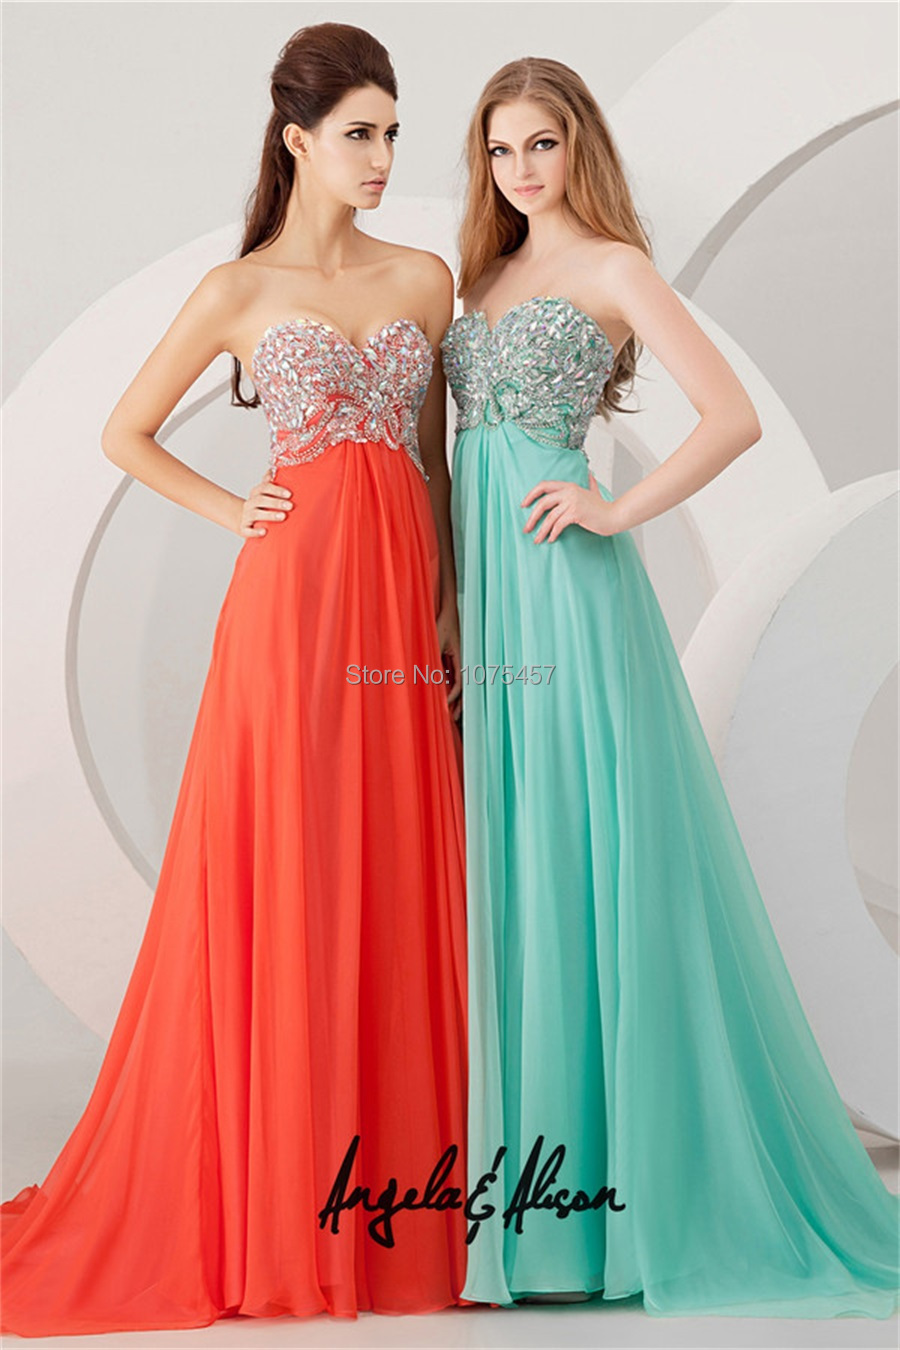 Free Shipping Orange Prom Dress With Crystal Beading 2014 Empire ...